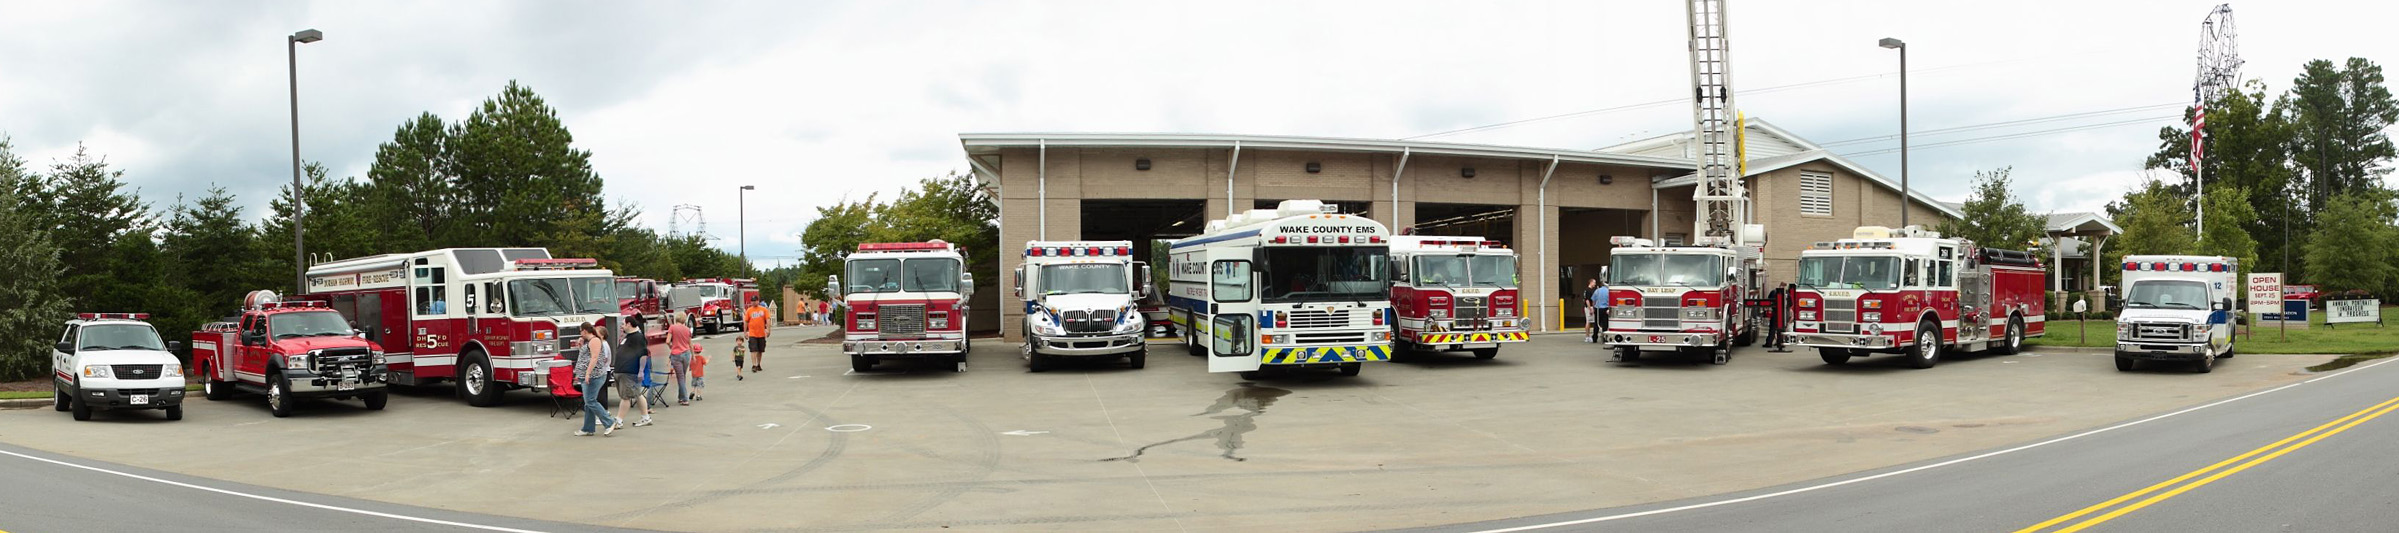 legeros fire blog archives 2006 2015 left to right you re seeing stony hill durham highway wake forest wake county ems times two stony hill bay leaf stony hil and wake county ems